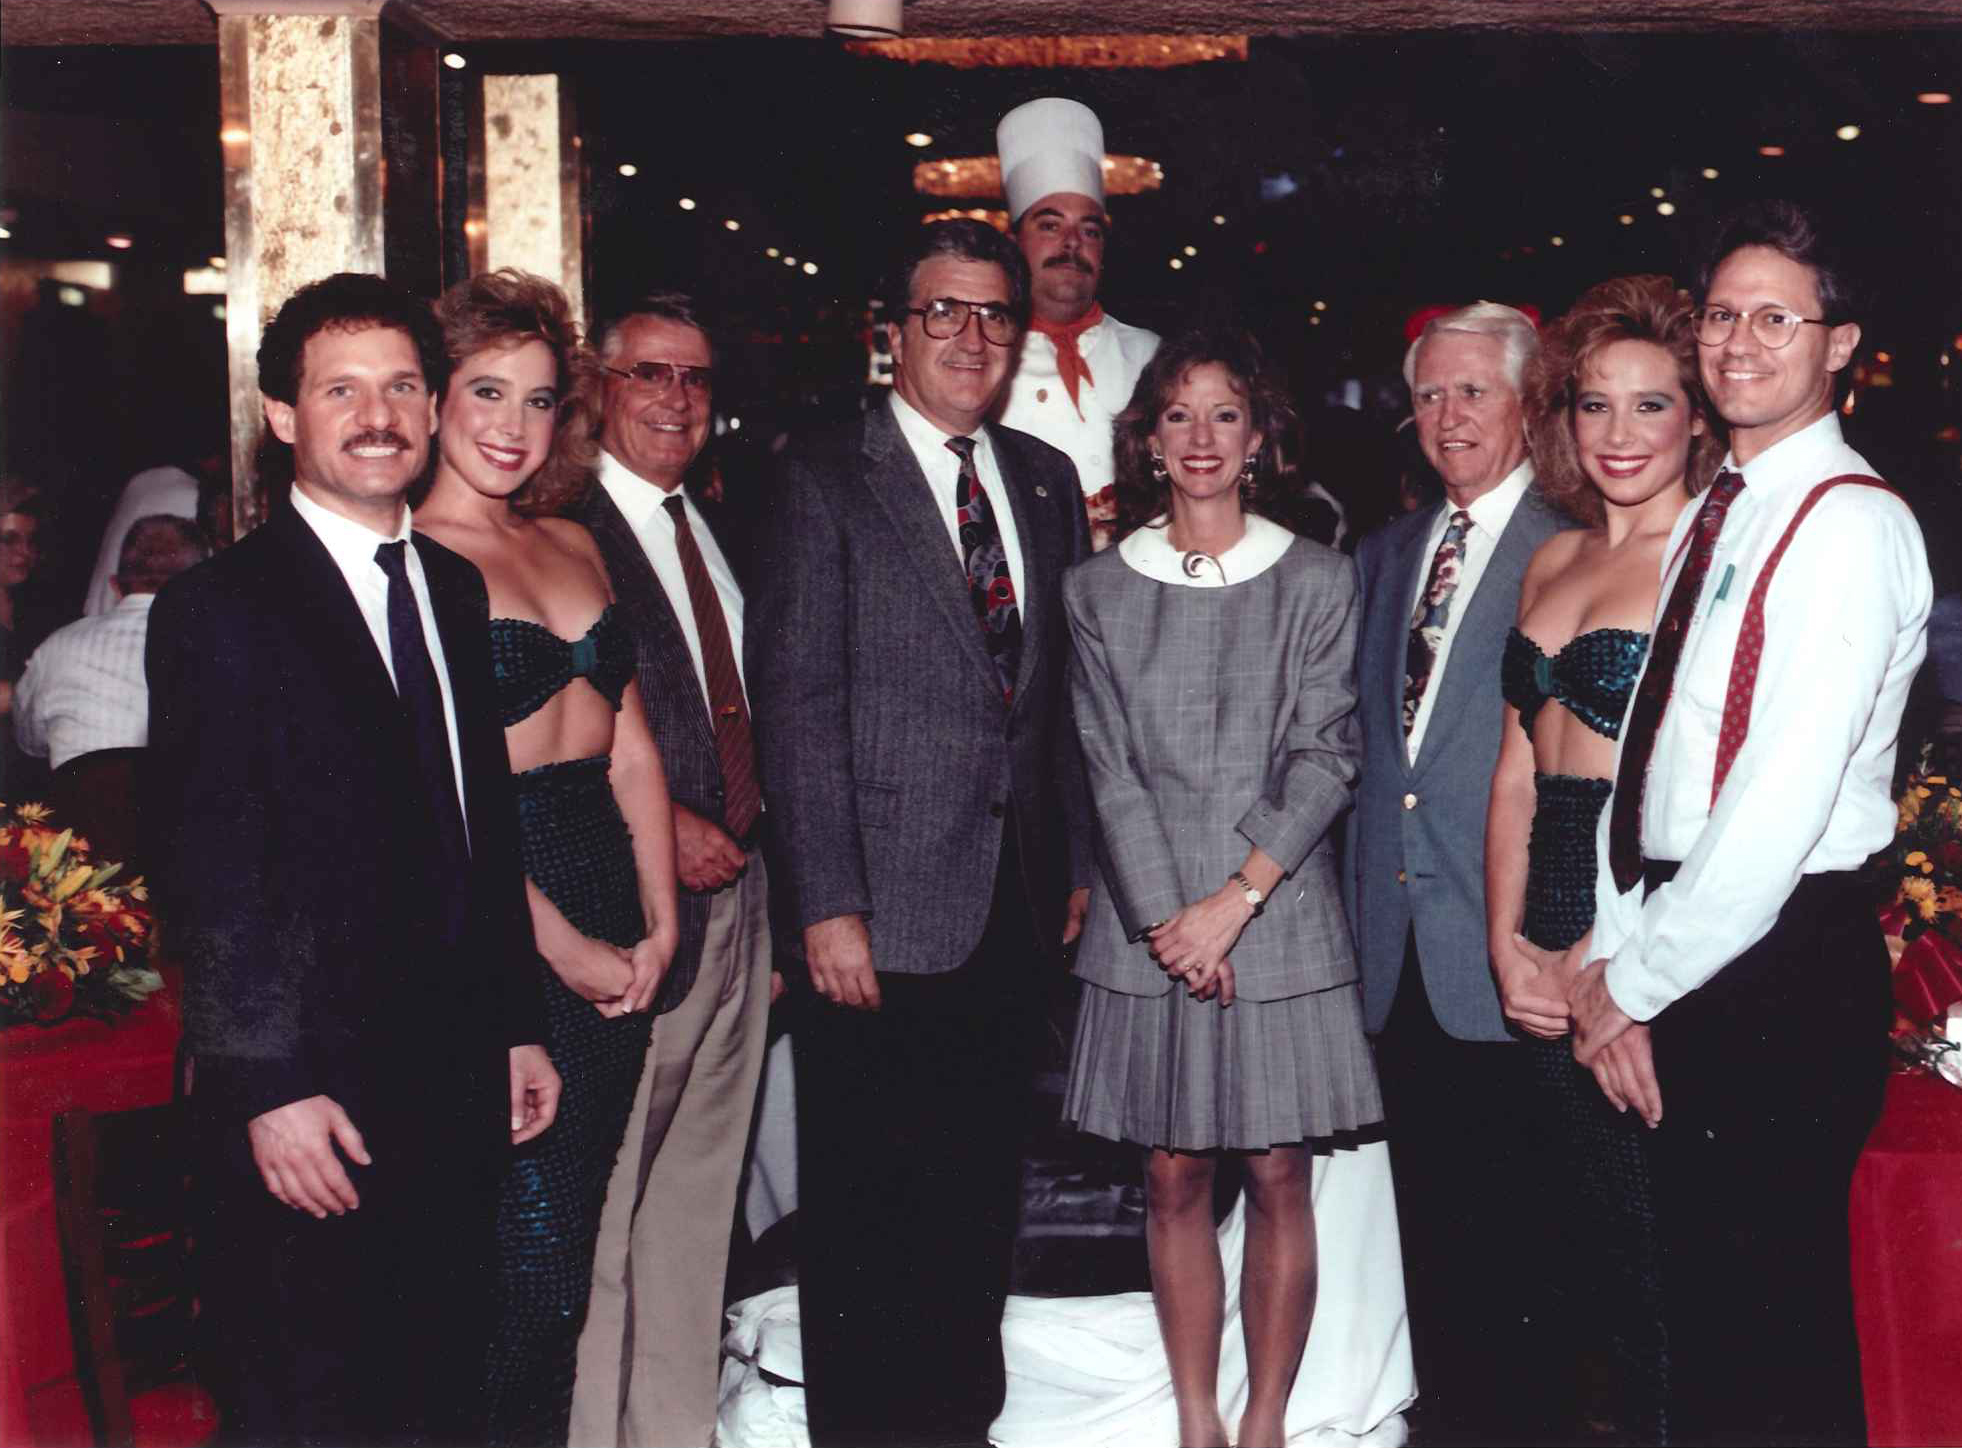 In 1991, the Golden Gate celebrates the sale of its 25 millionth shrimp cocktail. The signifcance of the event was maked by the attendance of the four Las Vegas mayors, whose collective terms in office spanned the entire 32 years and all 25 million shrimp cocktails.